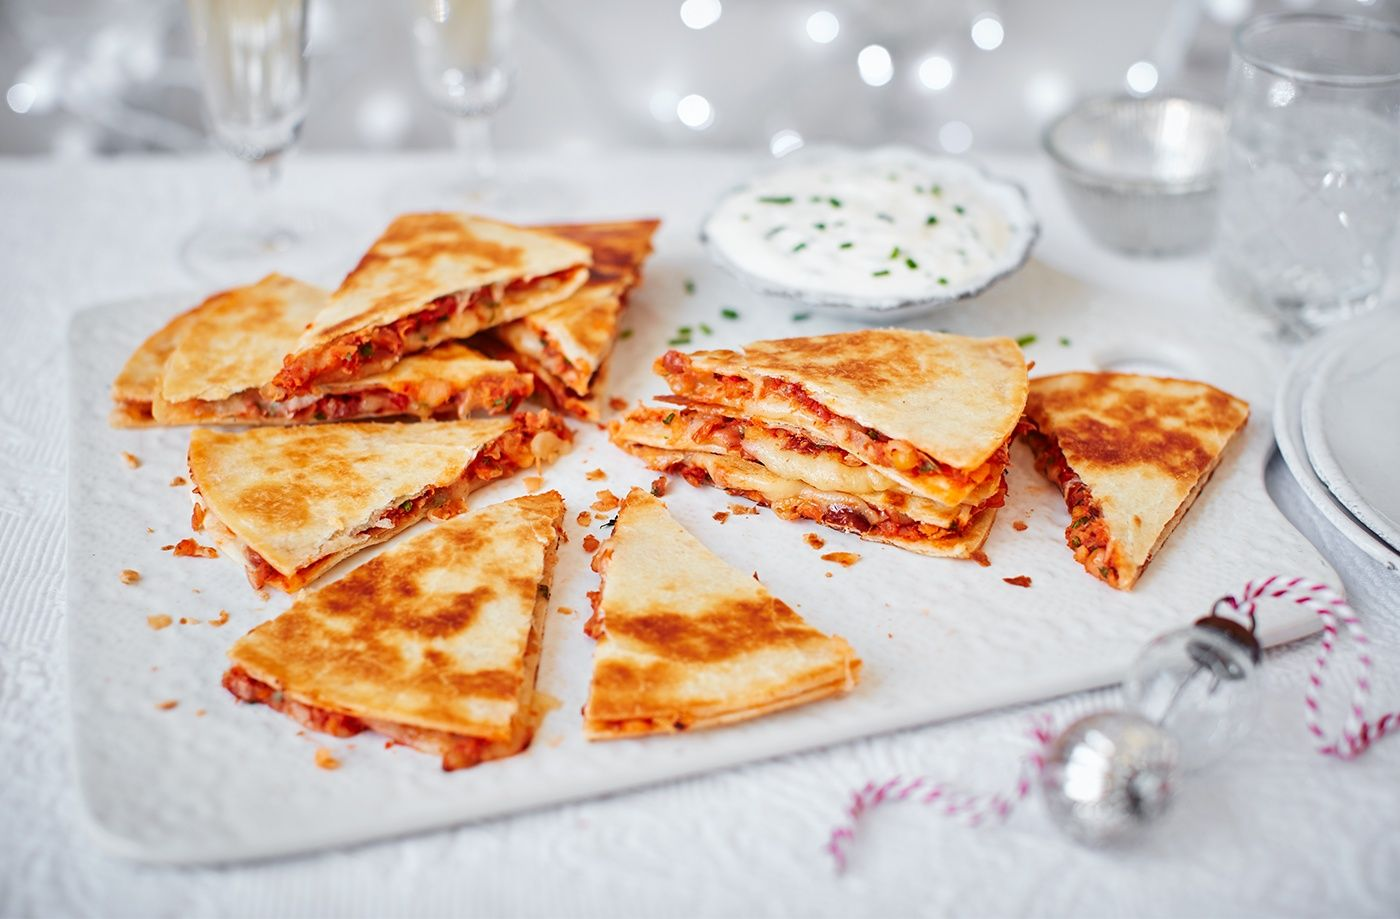 10 best canap recipes quesadillas chipotle and beans 10 best canap recipes easy christmas recipeschristmas party foodmexican forumfinder Choice Image